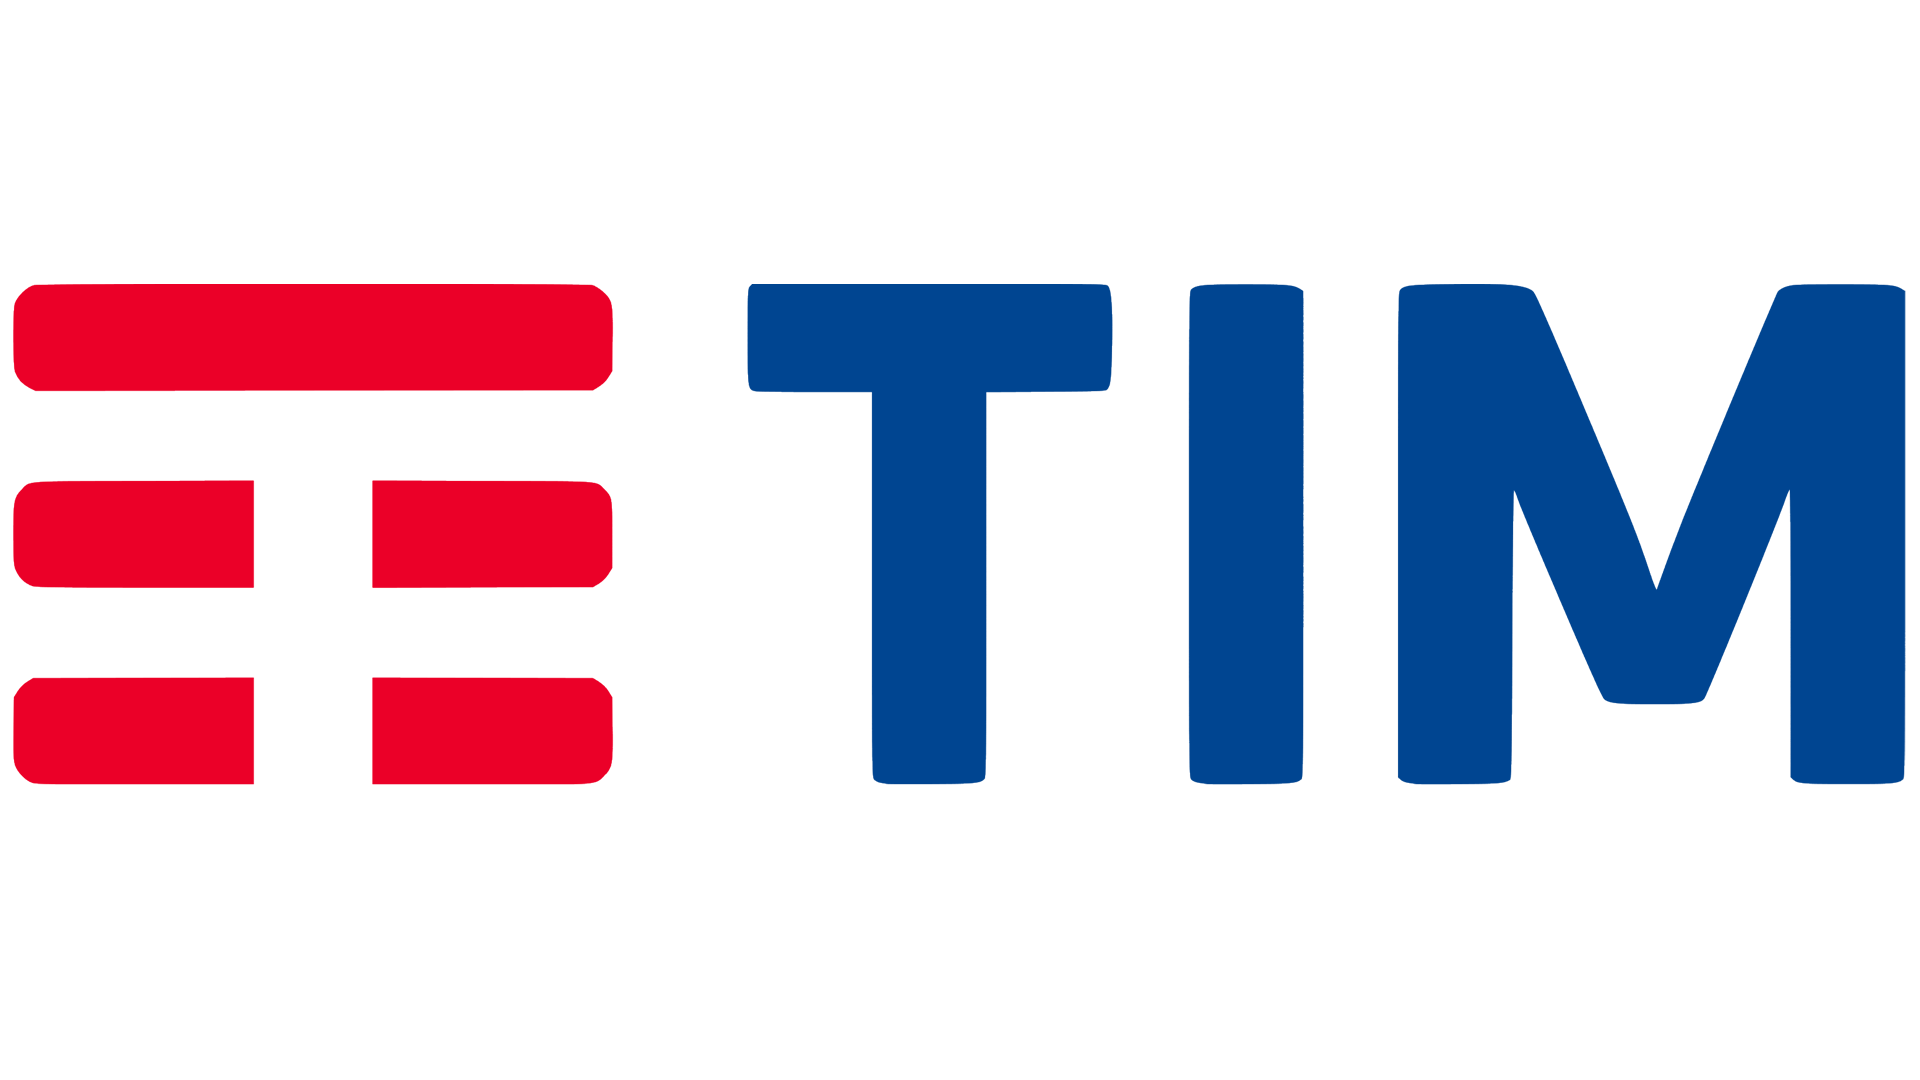 tim logo tim symbol meaning history and evolution